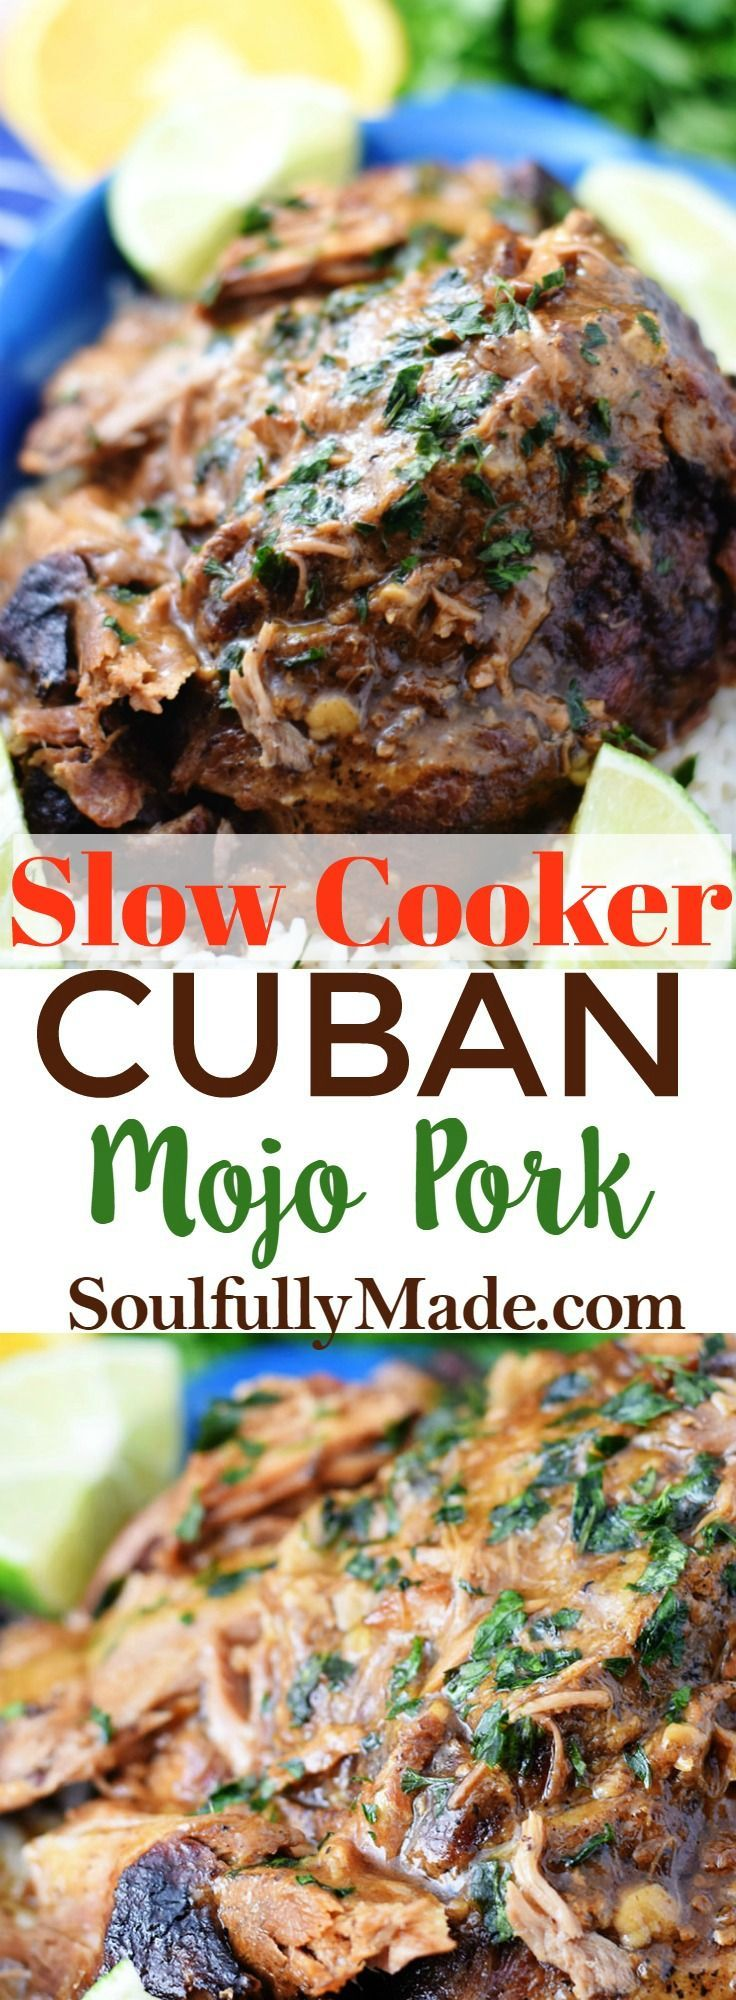 Slow Cooker Cuban Mojo Pork marinates in the fantastic flavors of citrus, garlic, oregano, and cumin all while cooking to a delicious tenderness. This an easy and flavorful meal that is perfect for any day of the week! #slowcooker #crockpot #CubanPorkRoast #CubanMojoPork #MojoPork #Mojo #CubanFood